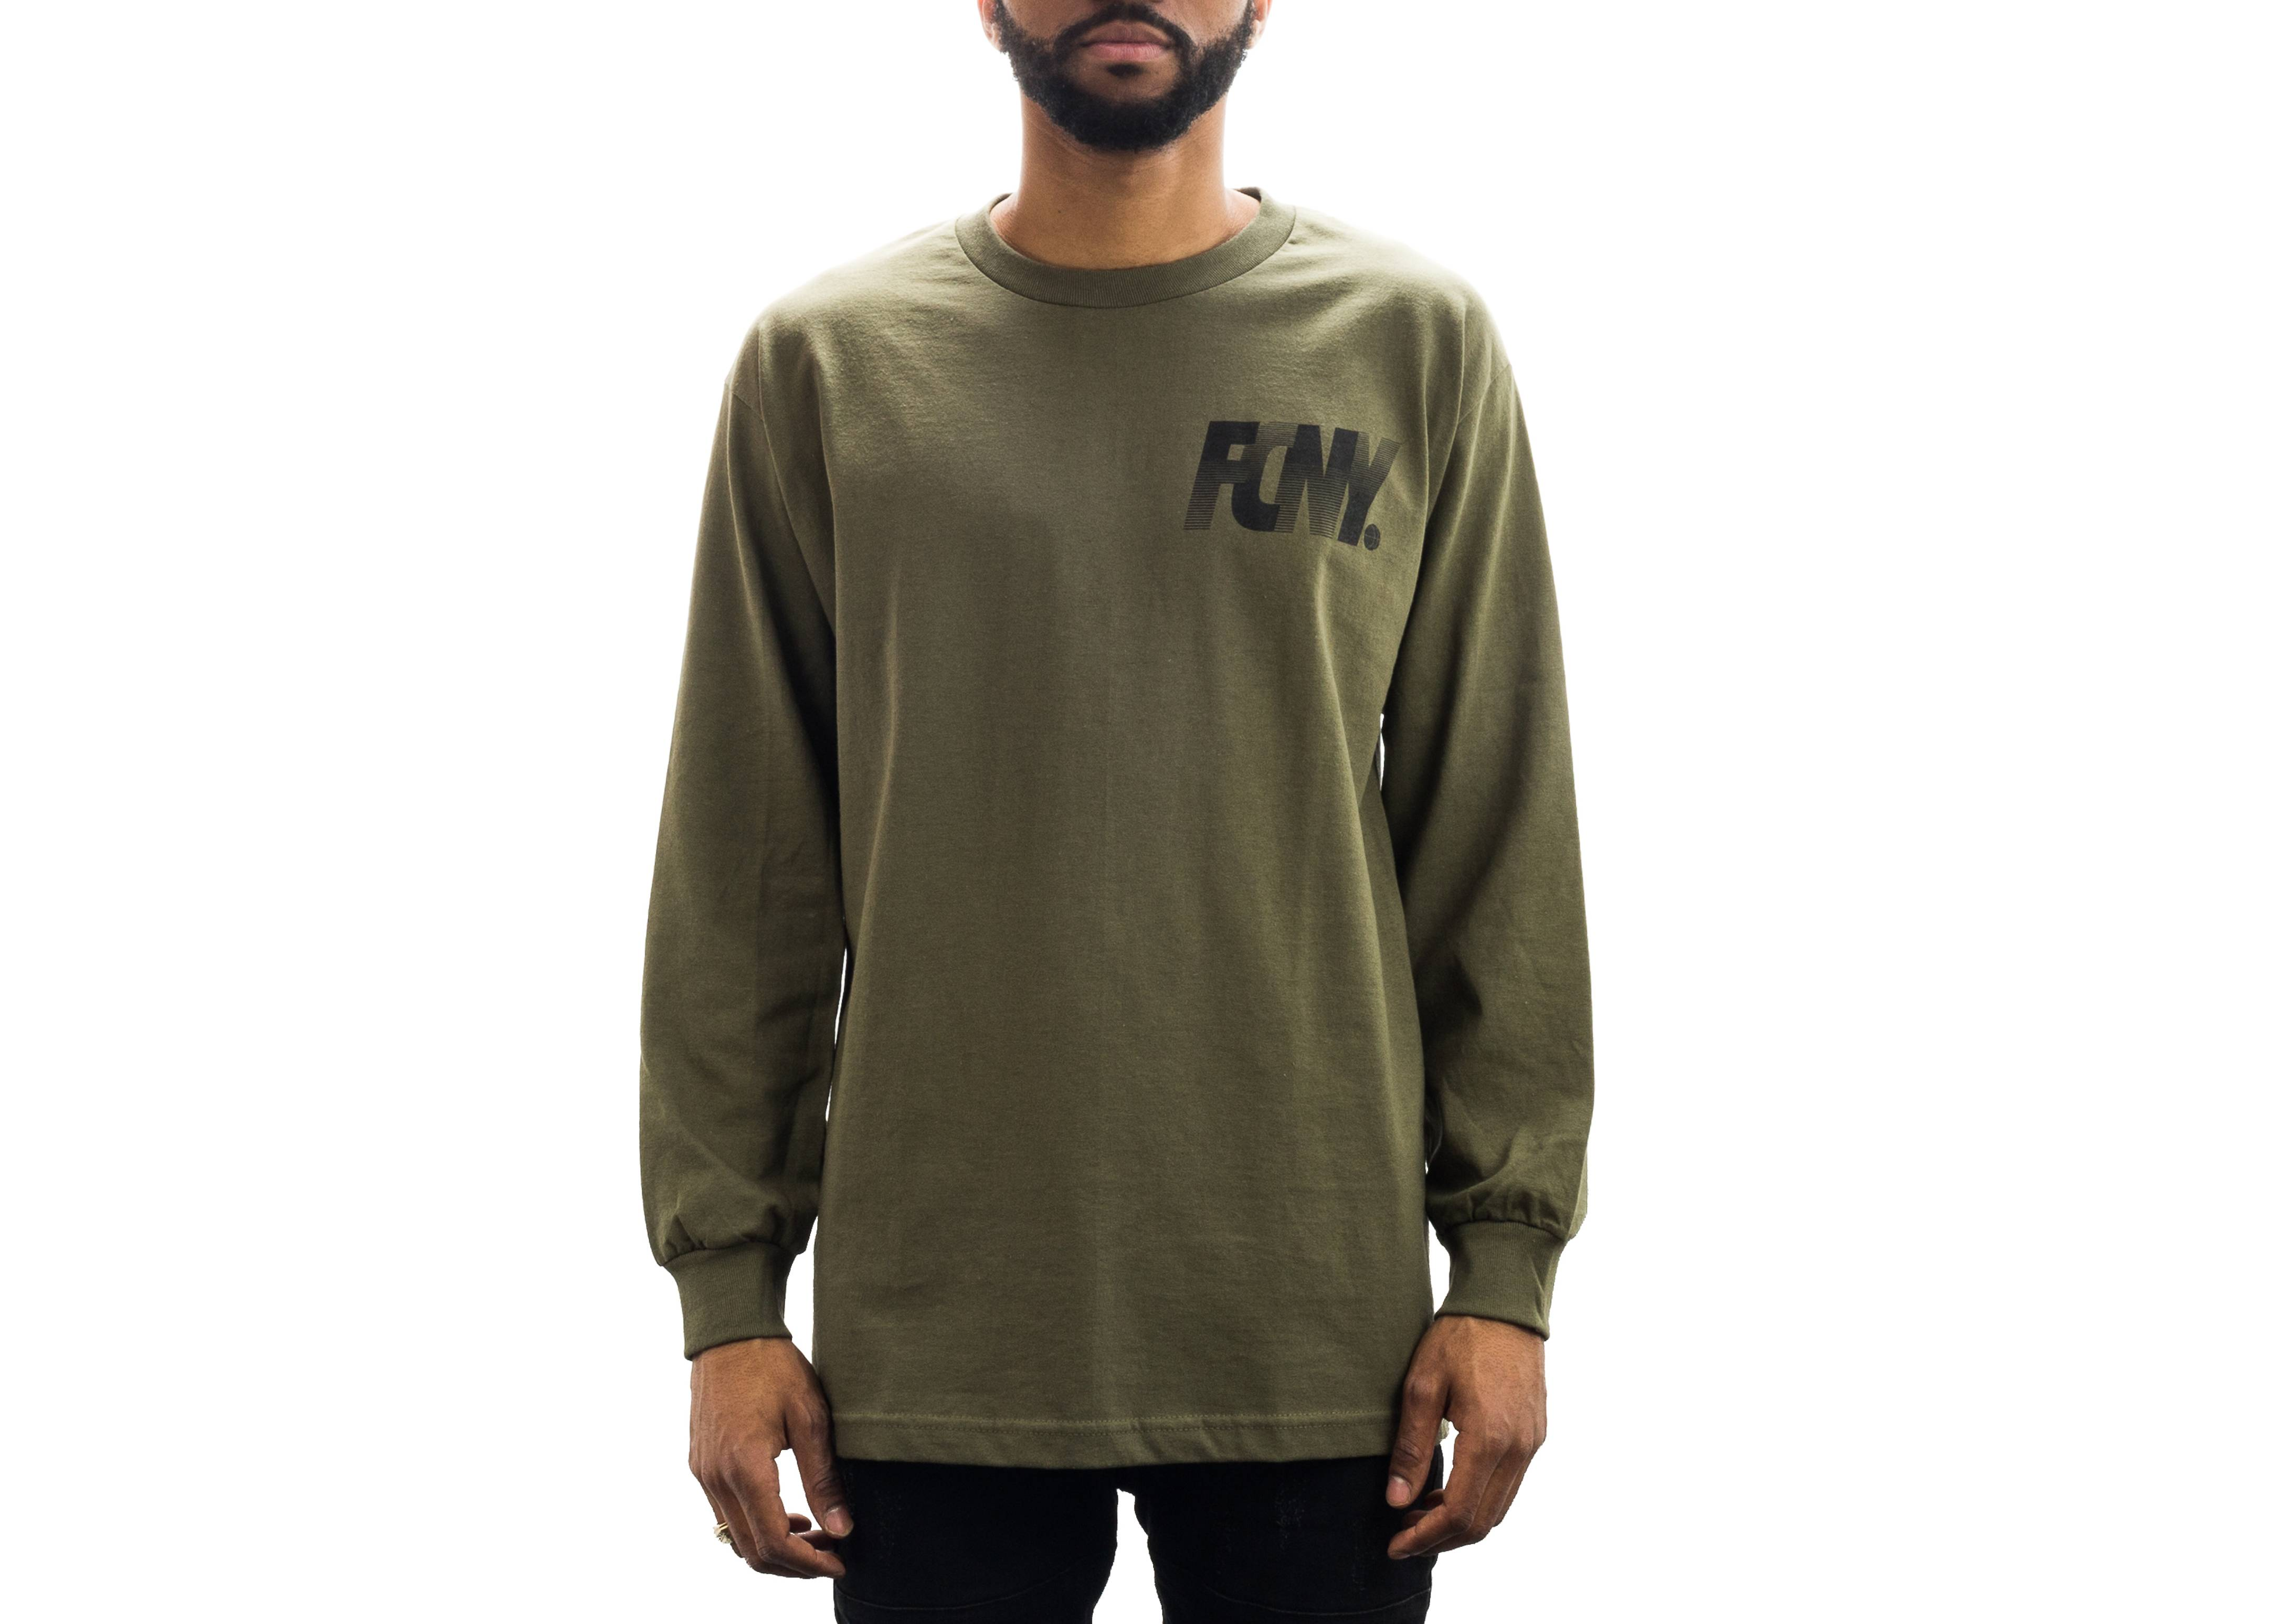 razzle long sleeve t-shirt